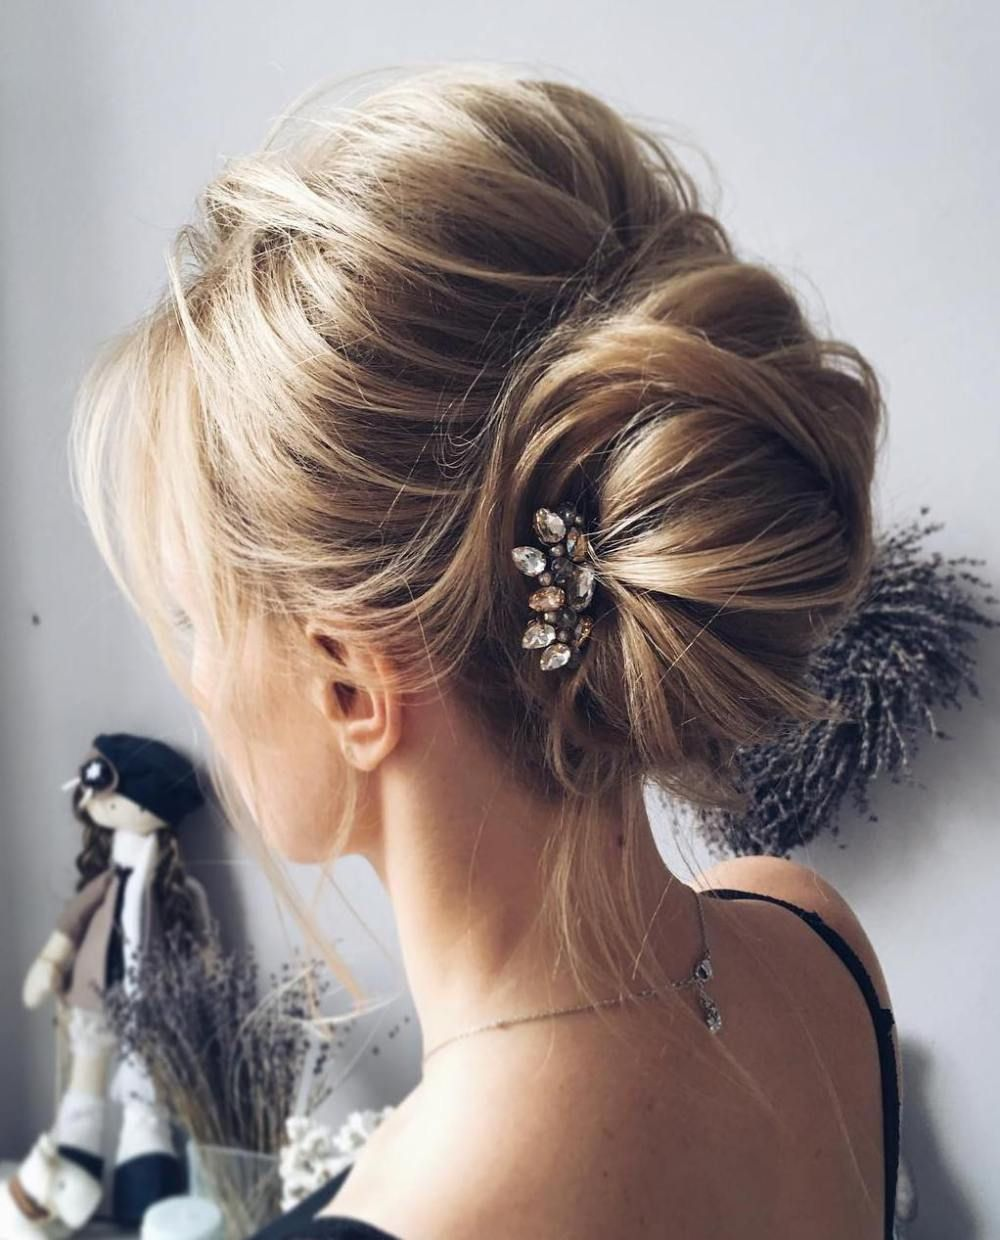 Bridesmaid Hairstyles For Thin Hair: 60 Updos For Thin Hair That Score Maximum Style Point In